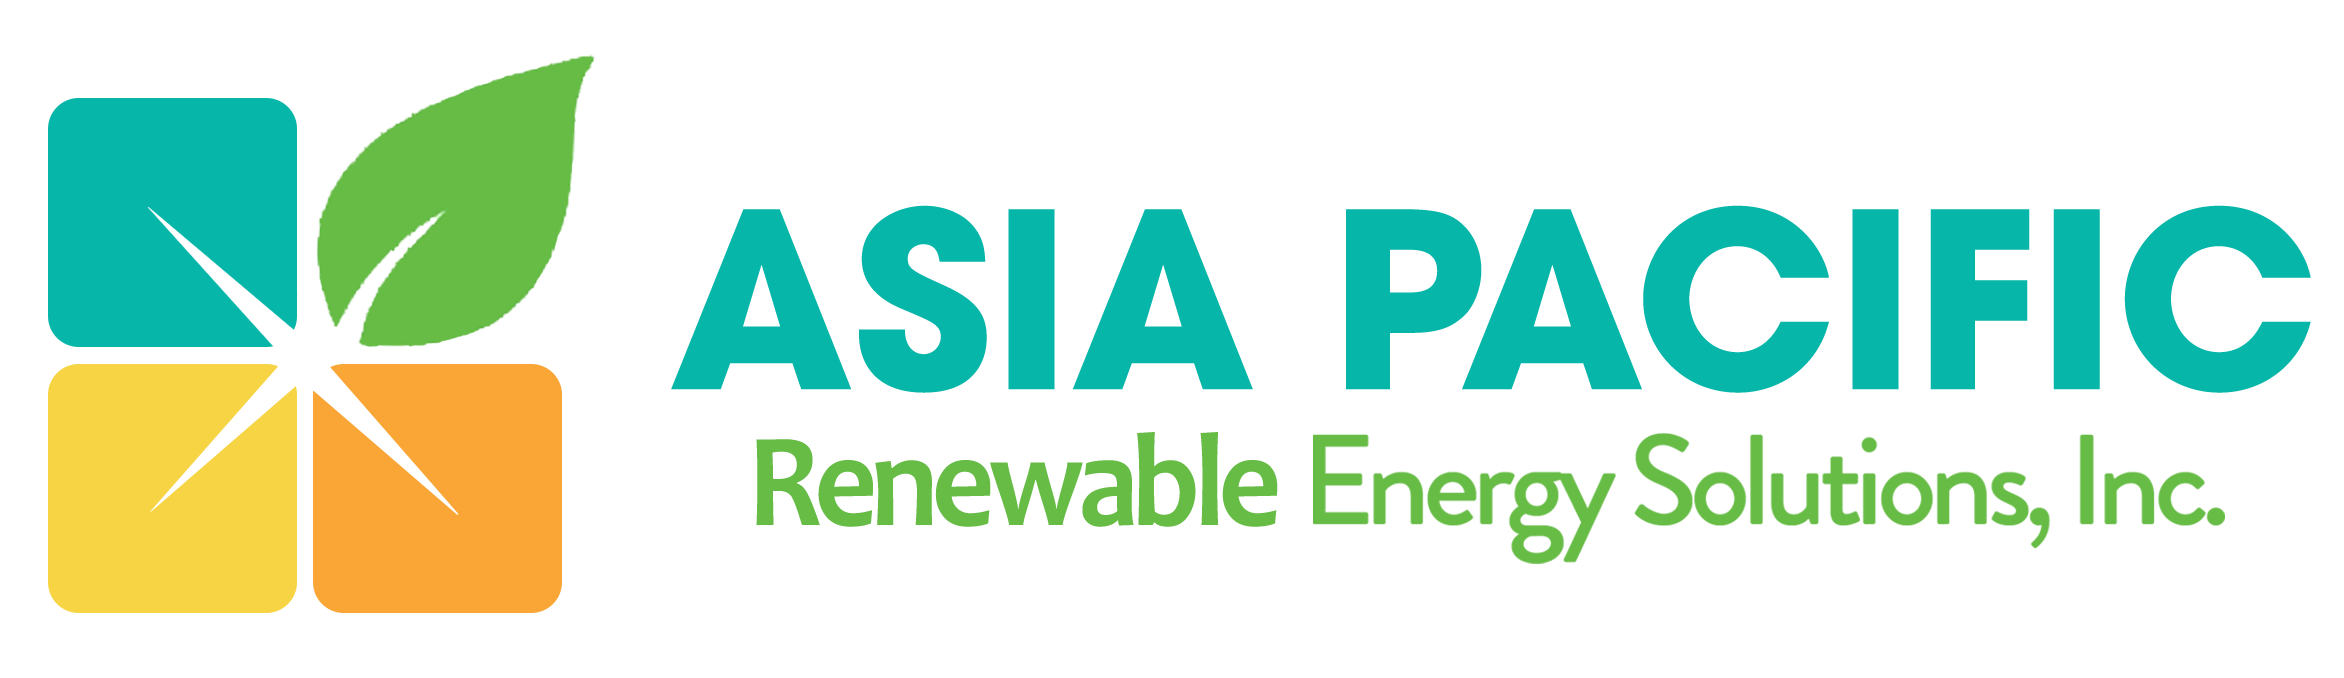 OPUS Energy Solutions